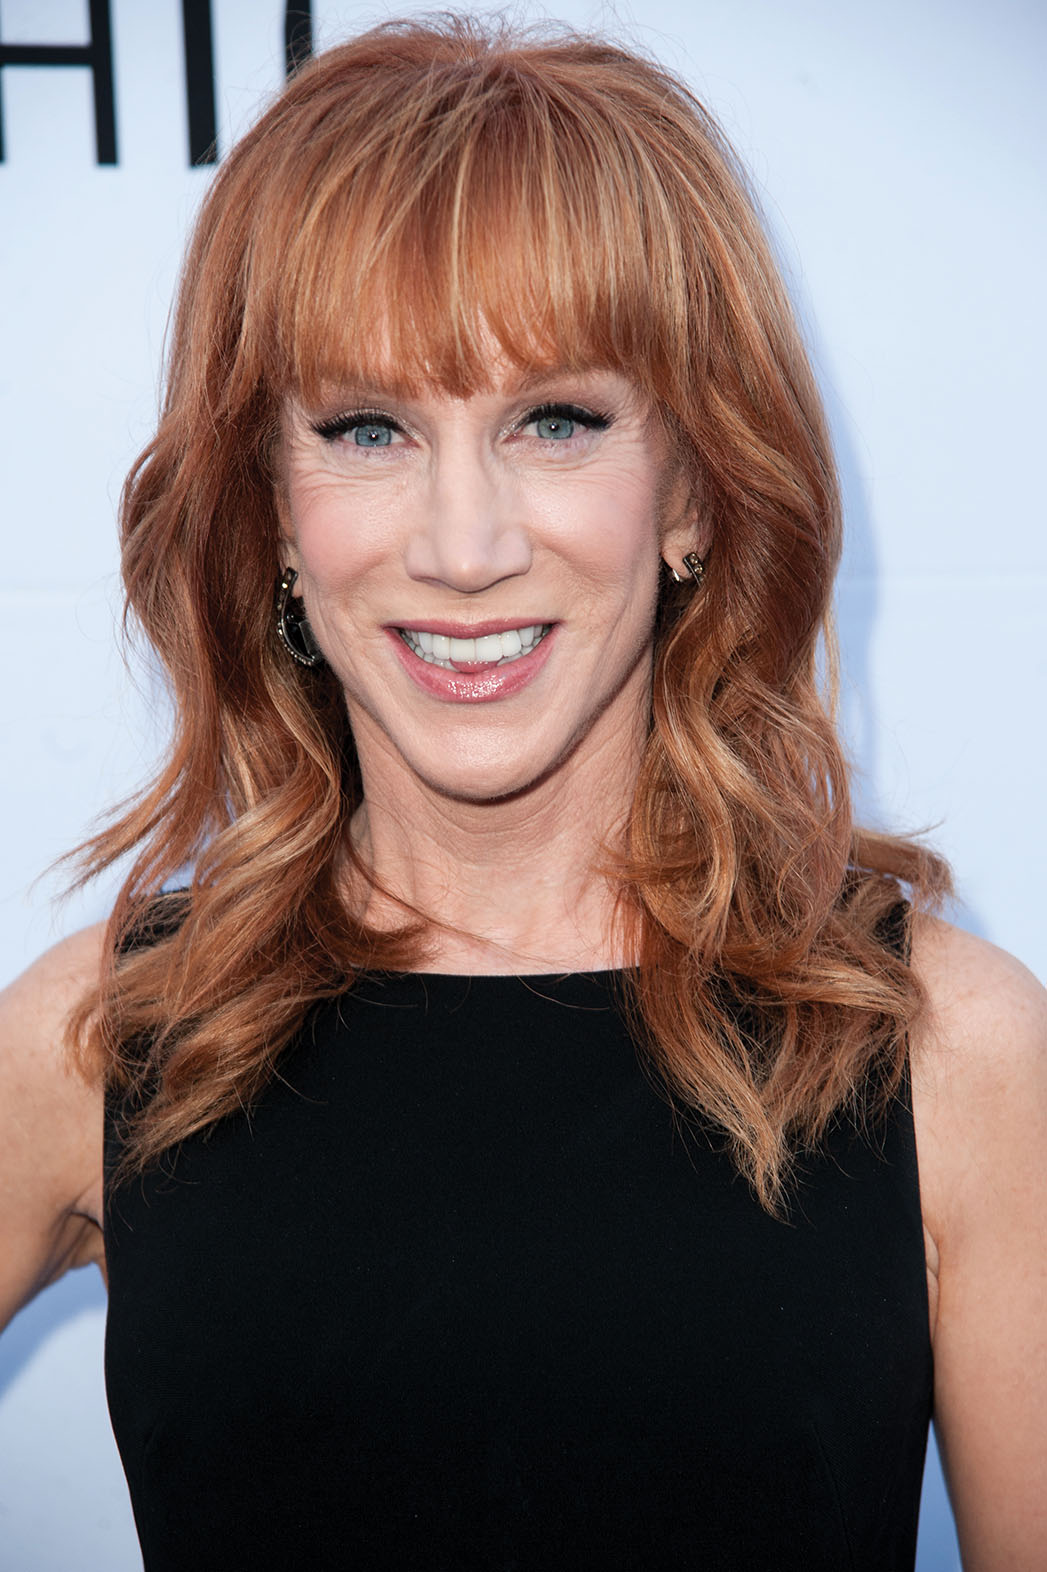 Kathy Griffin Fashion Police Replacement - P 2014